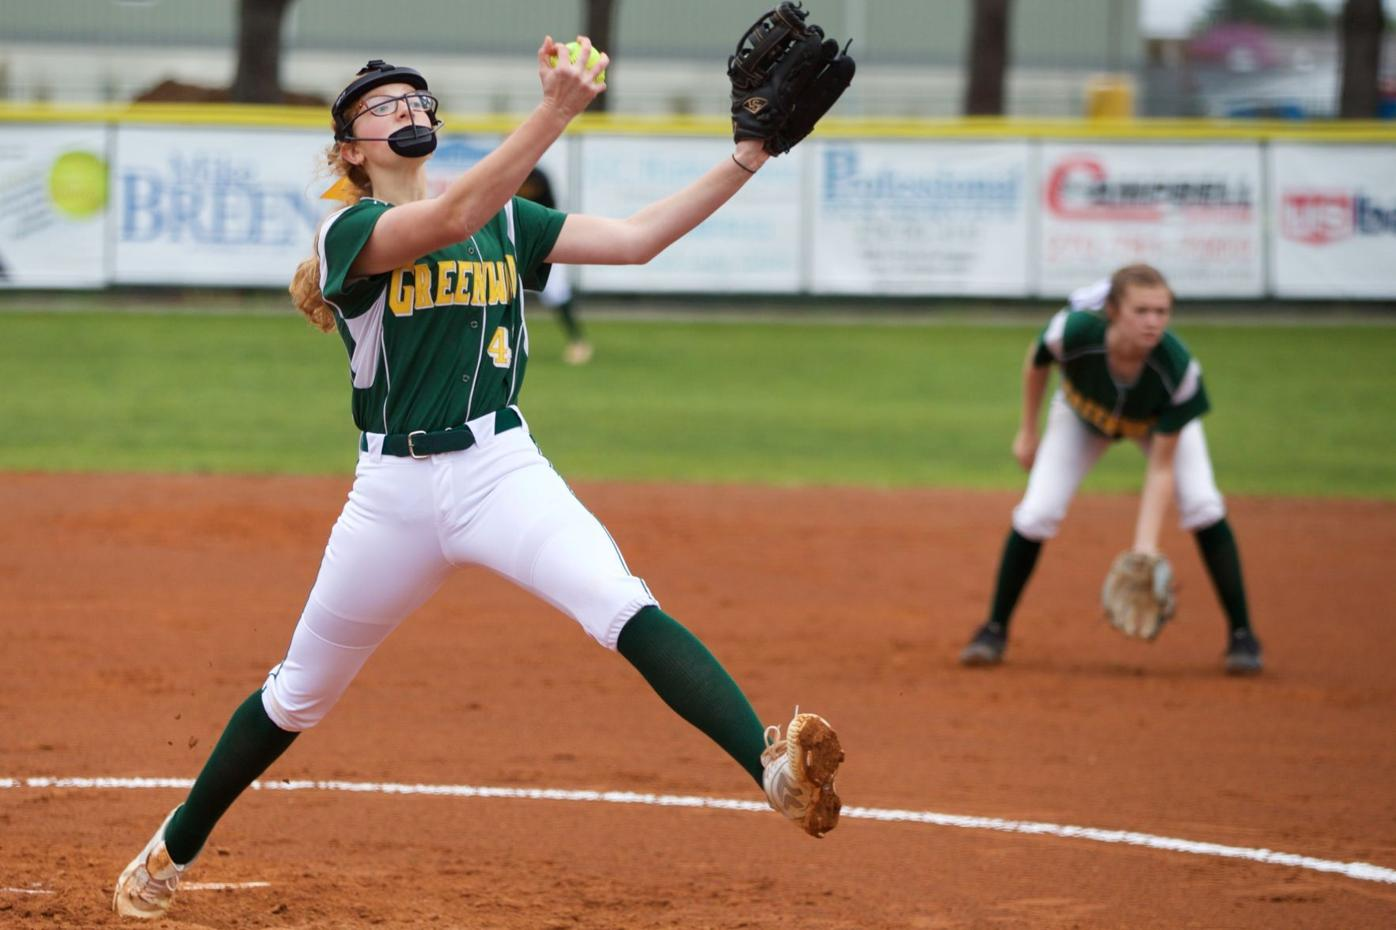 210410-sports-softball Meade County at Greenwood_outound 1.jpg